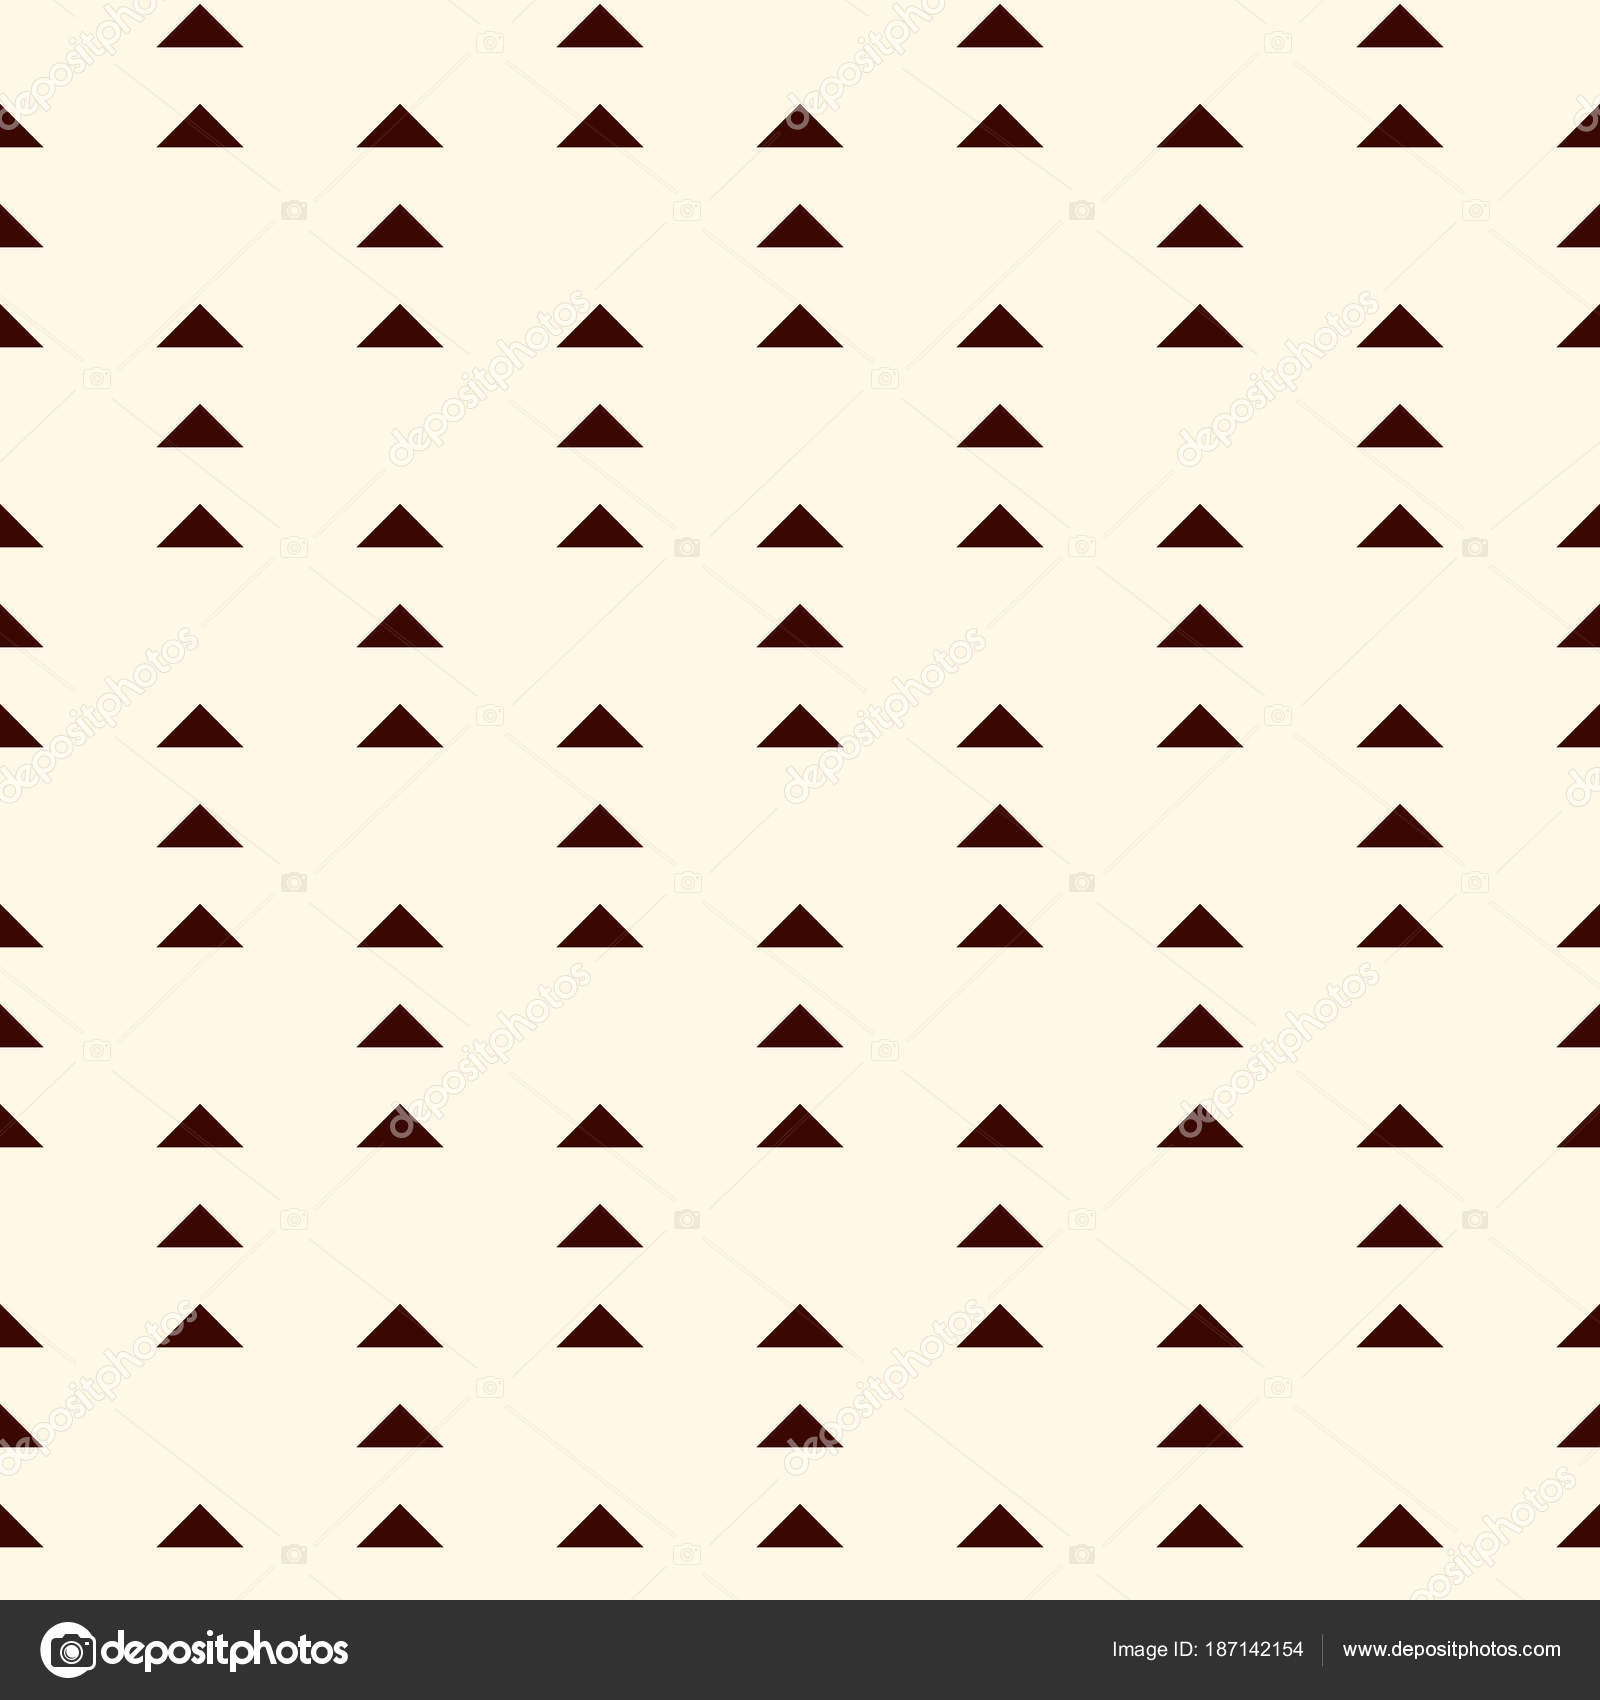 Repeated Mini Triangles On White Background Simple Abstract